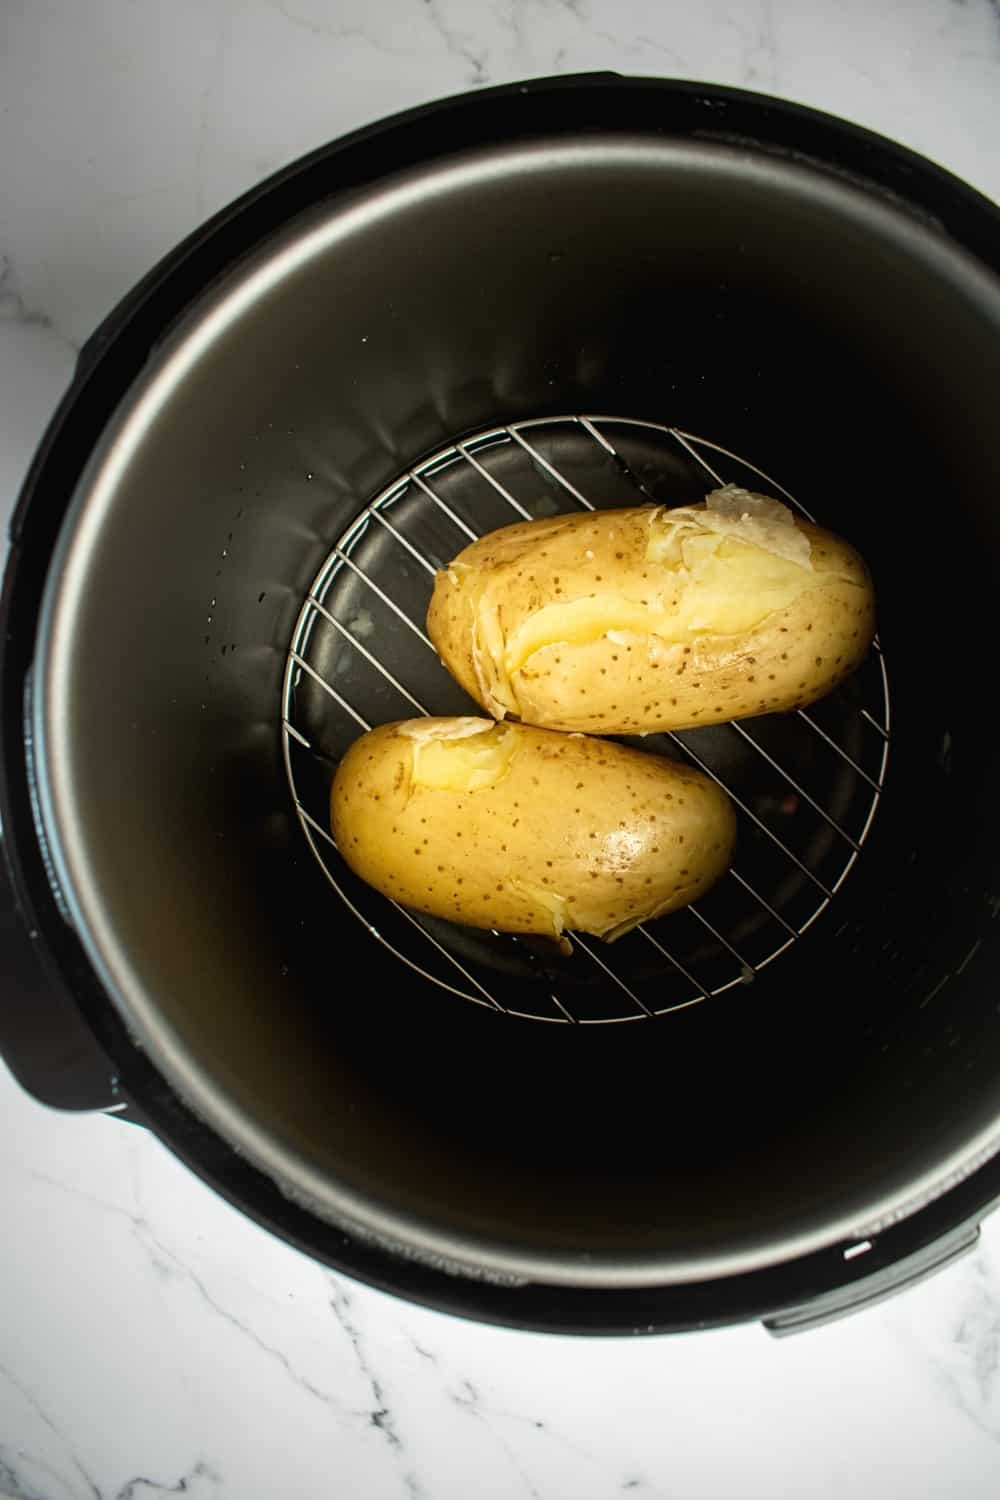 Two potatoes in an instant pot.